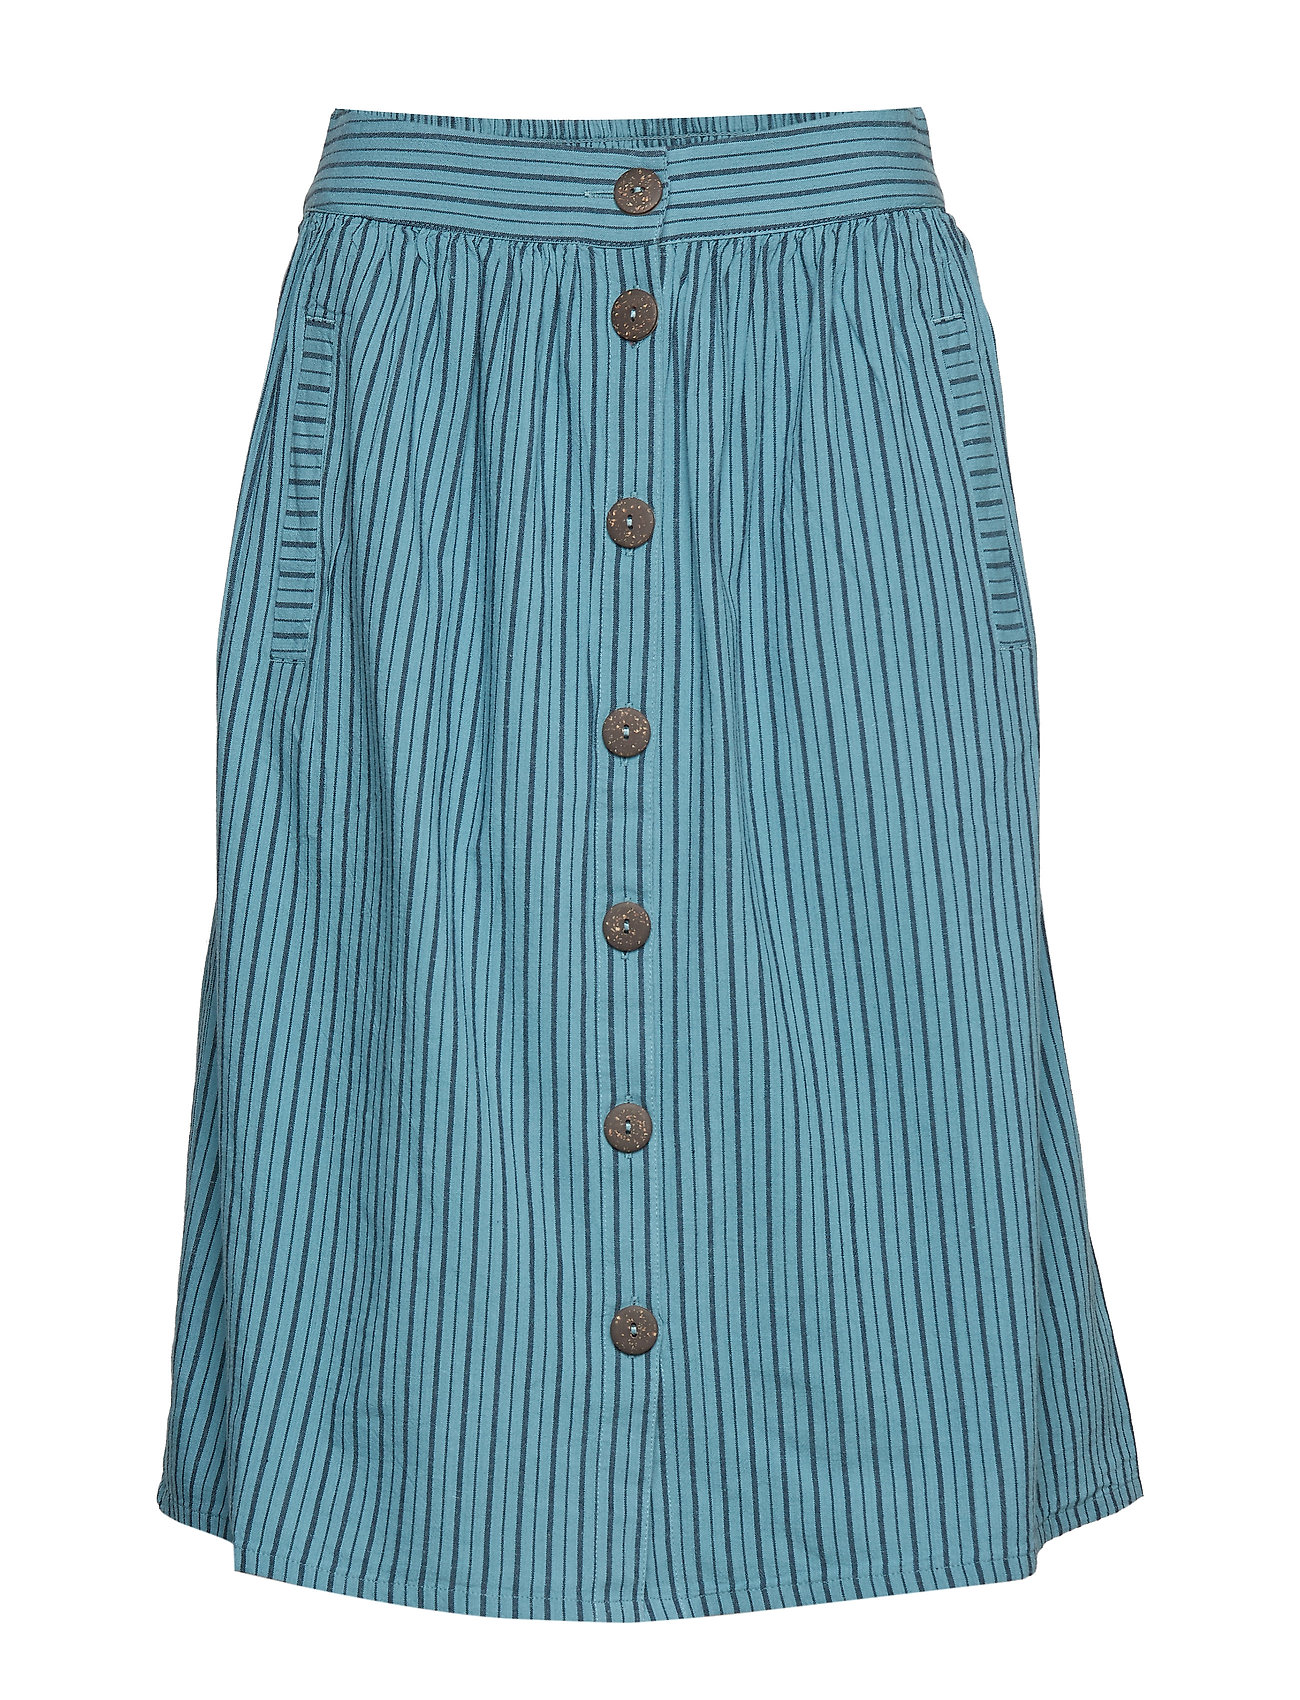 Esprit Casual Skirts light woven - DARK TURQUOISE